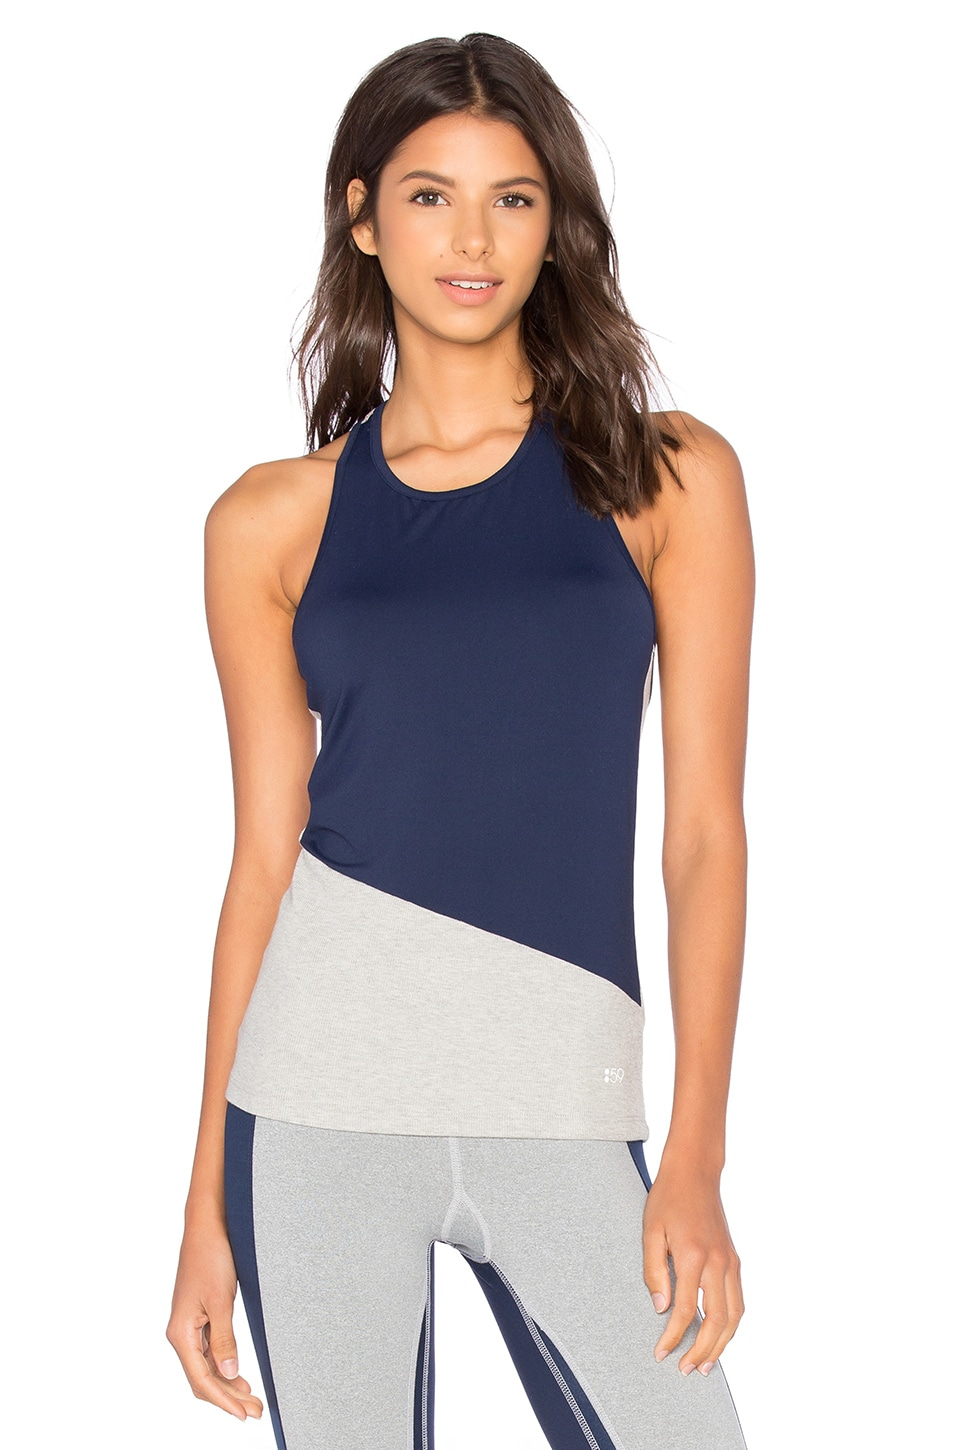 Splits59 Toni Tank in Heather Light Grey & Indigo & Sedona